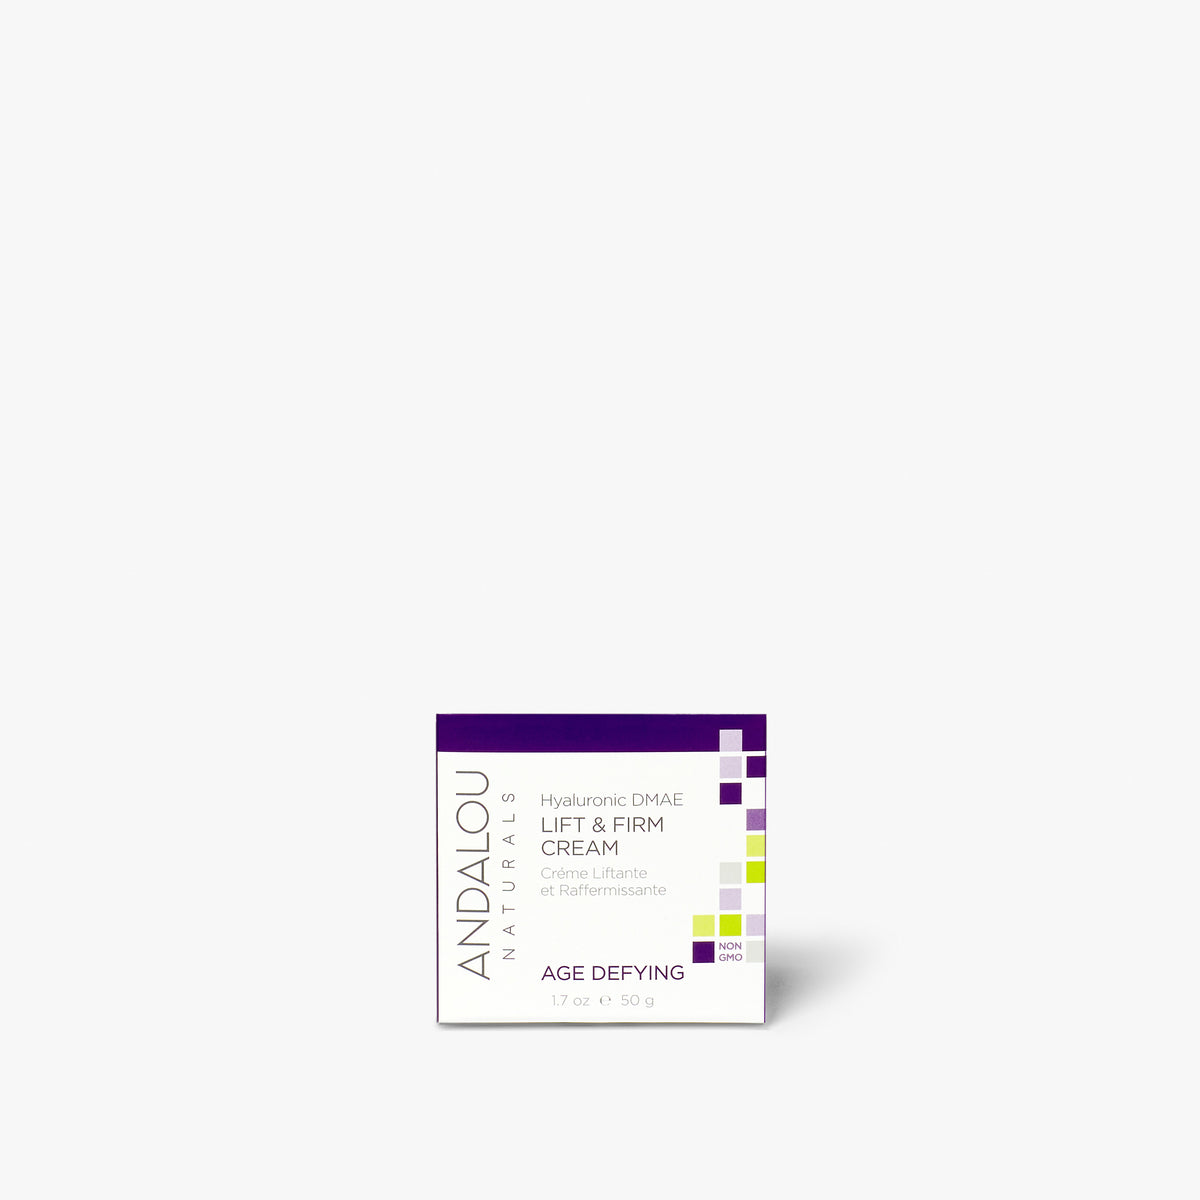 Age Defying Hyaluronic DMAE Lift & Firm Cream - Andalou Naturals US